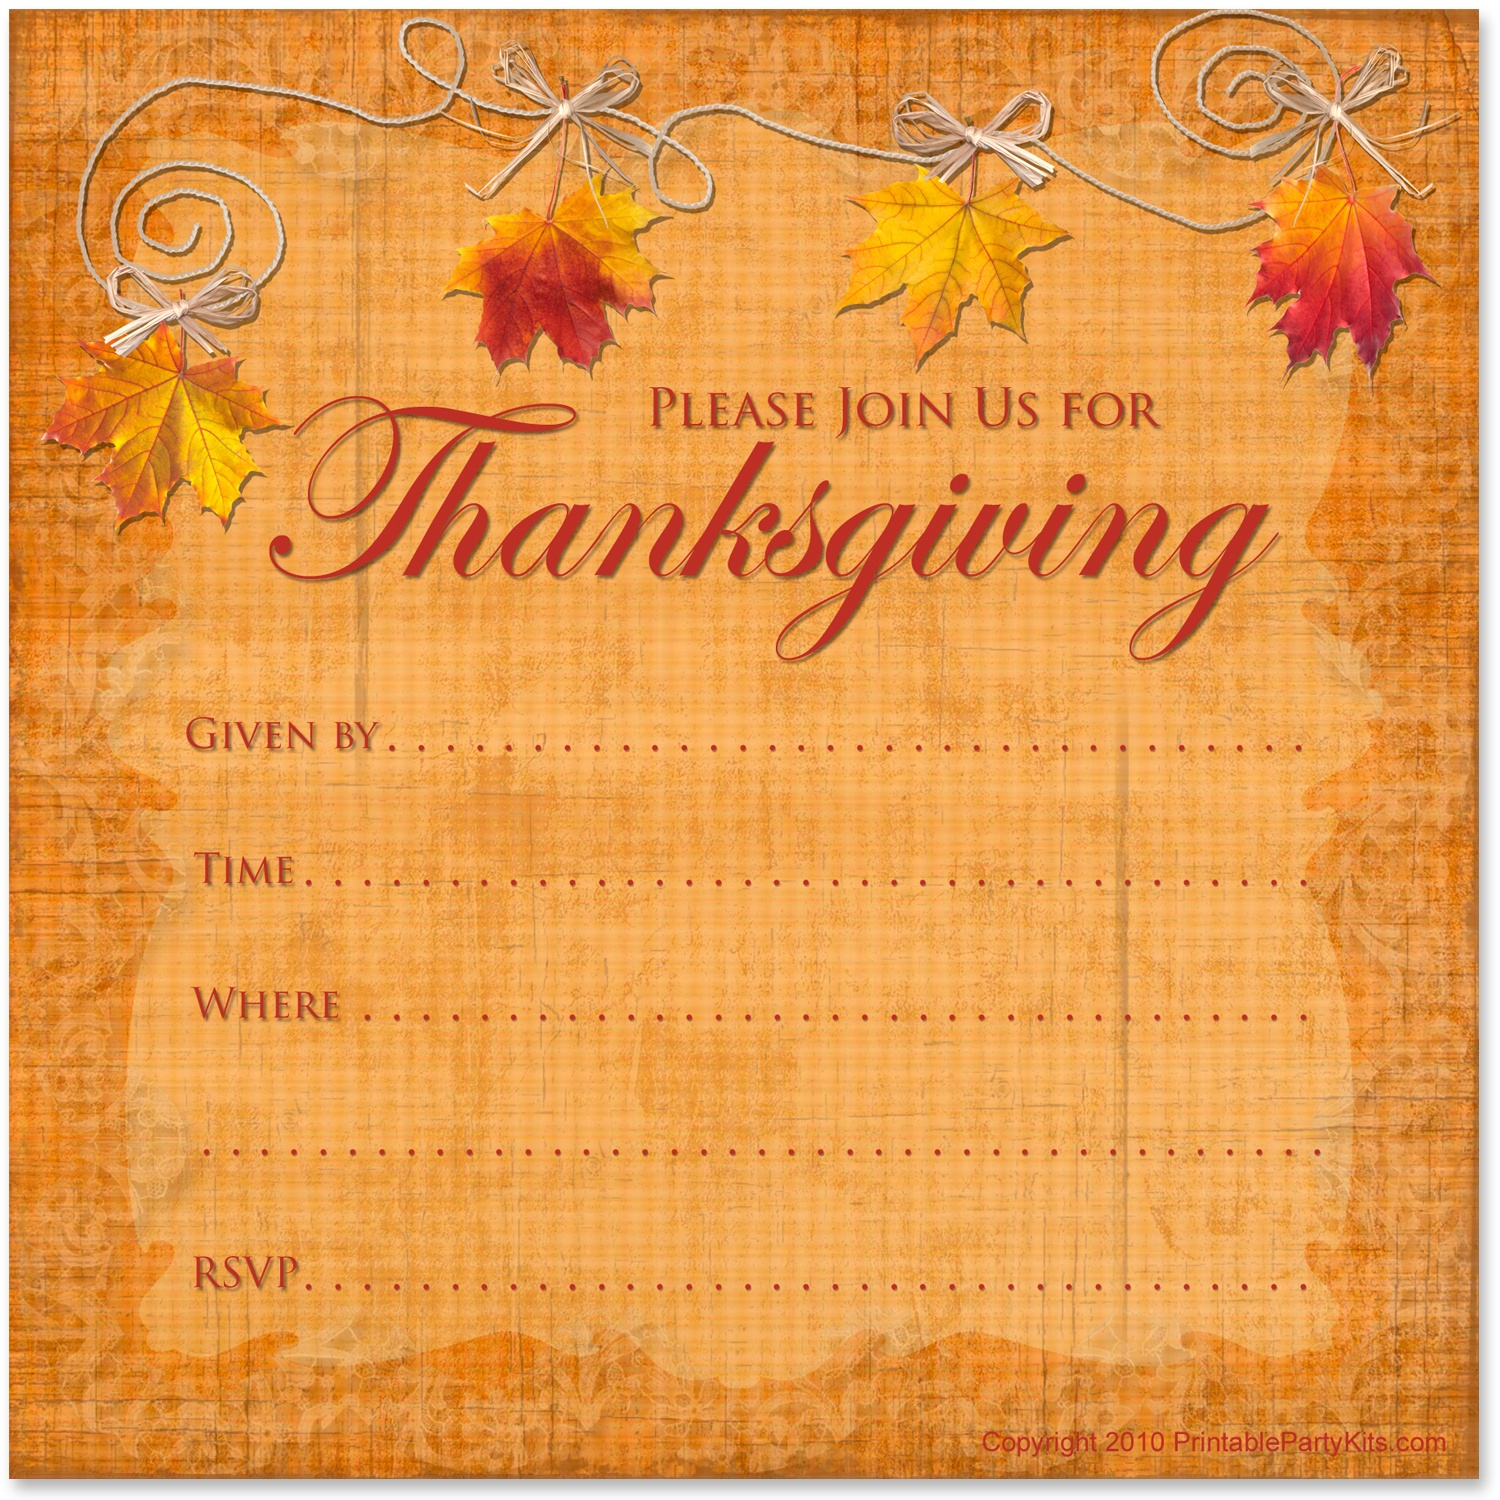 Can't Find Substitution For Tag [Post.body]--> Printable - Free Printable Thanksgiving Invitations